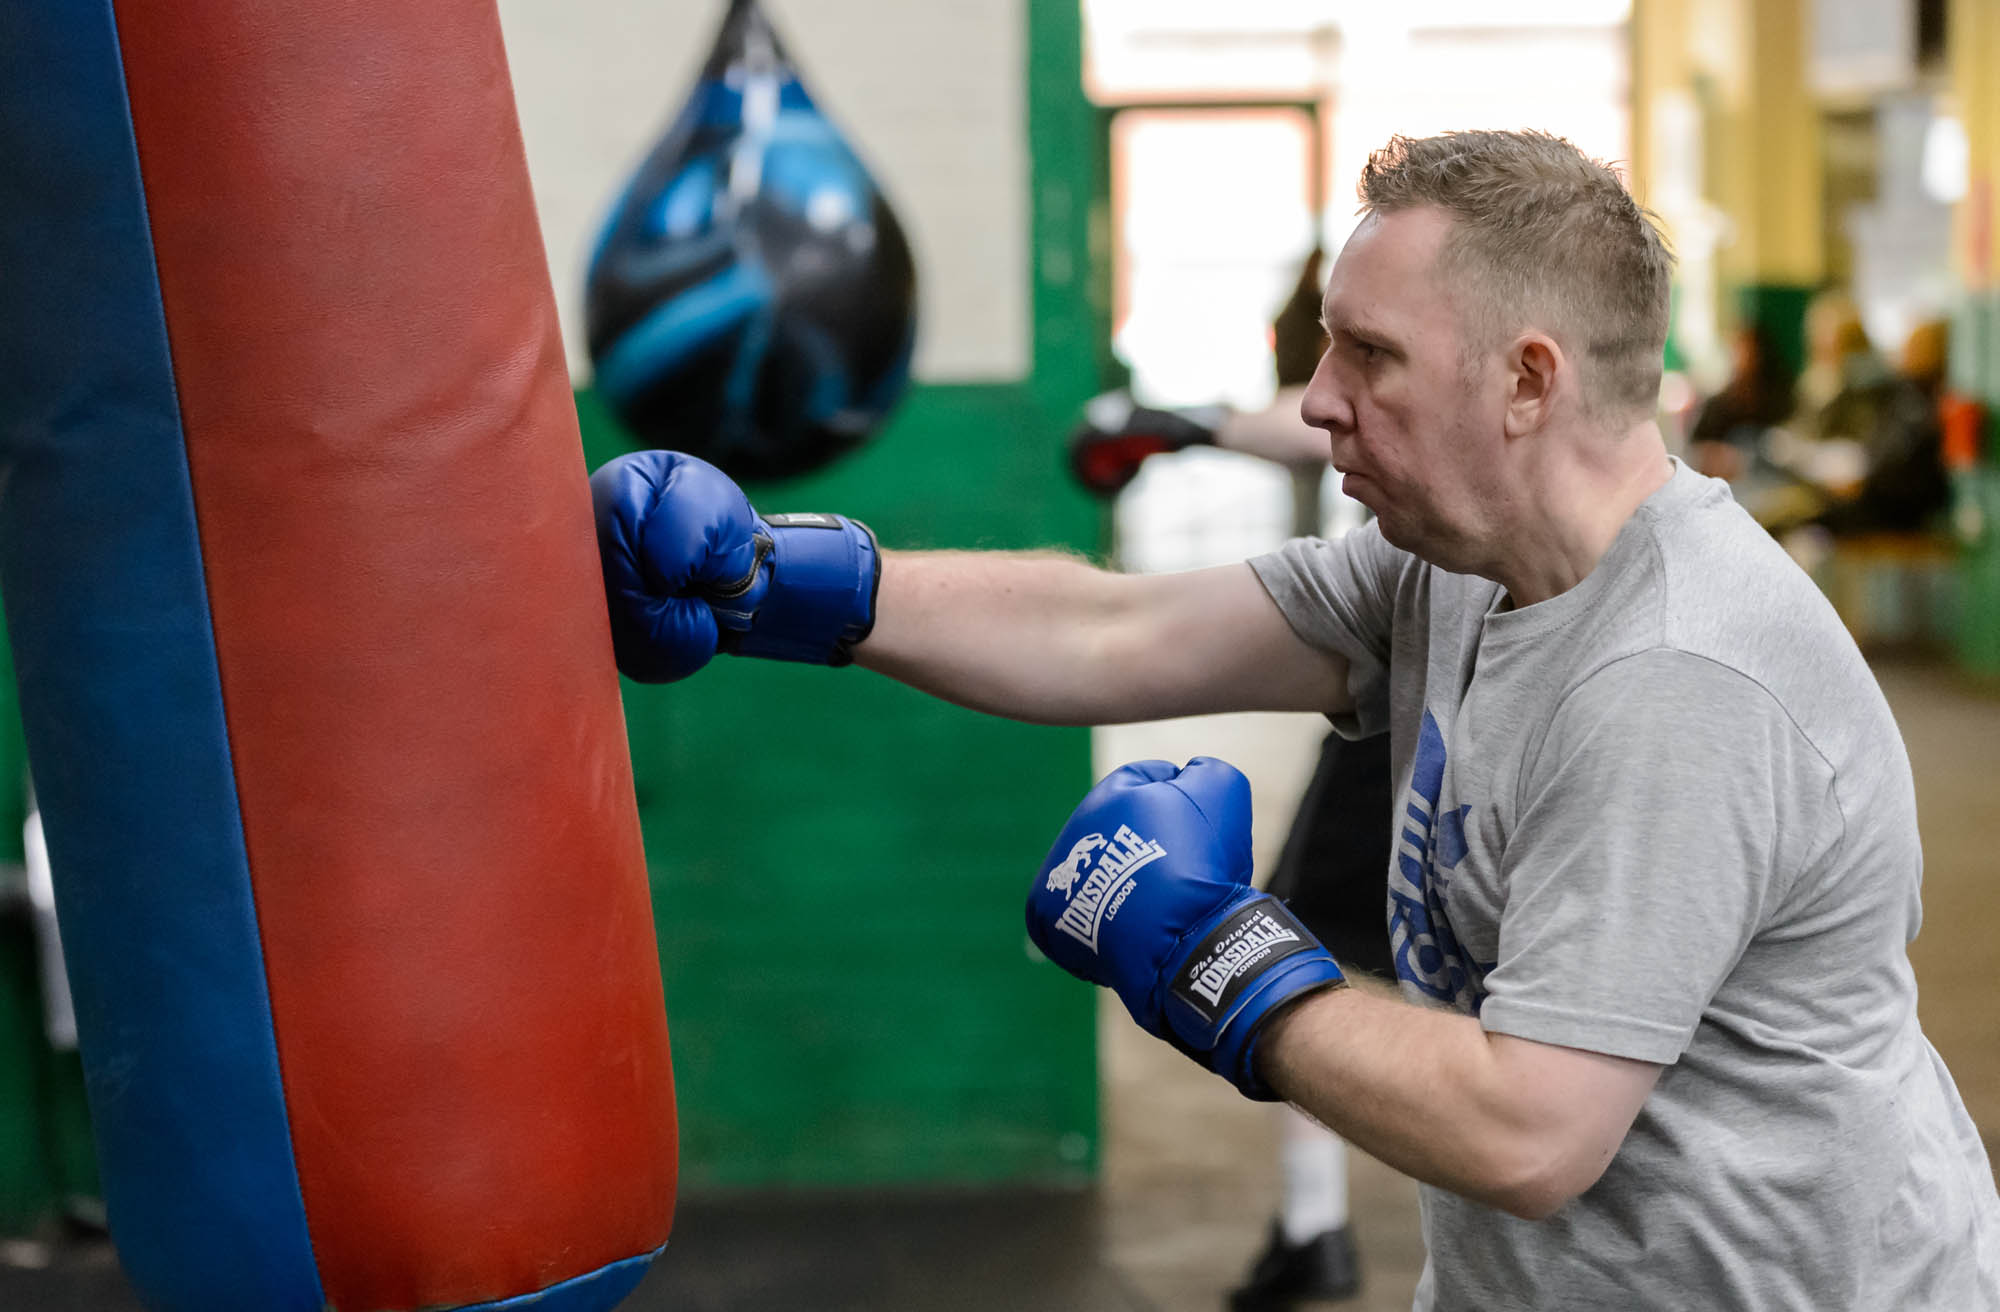 A man punches a punchbag in boxing training